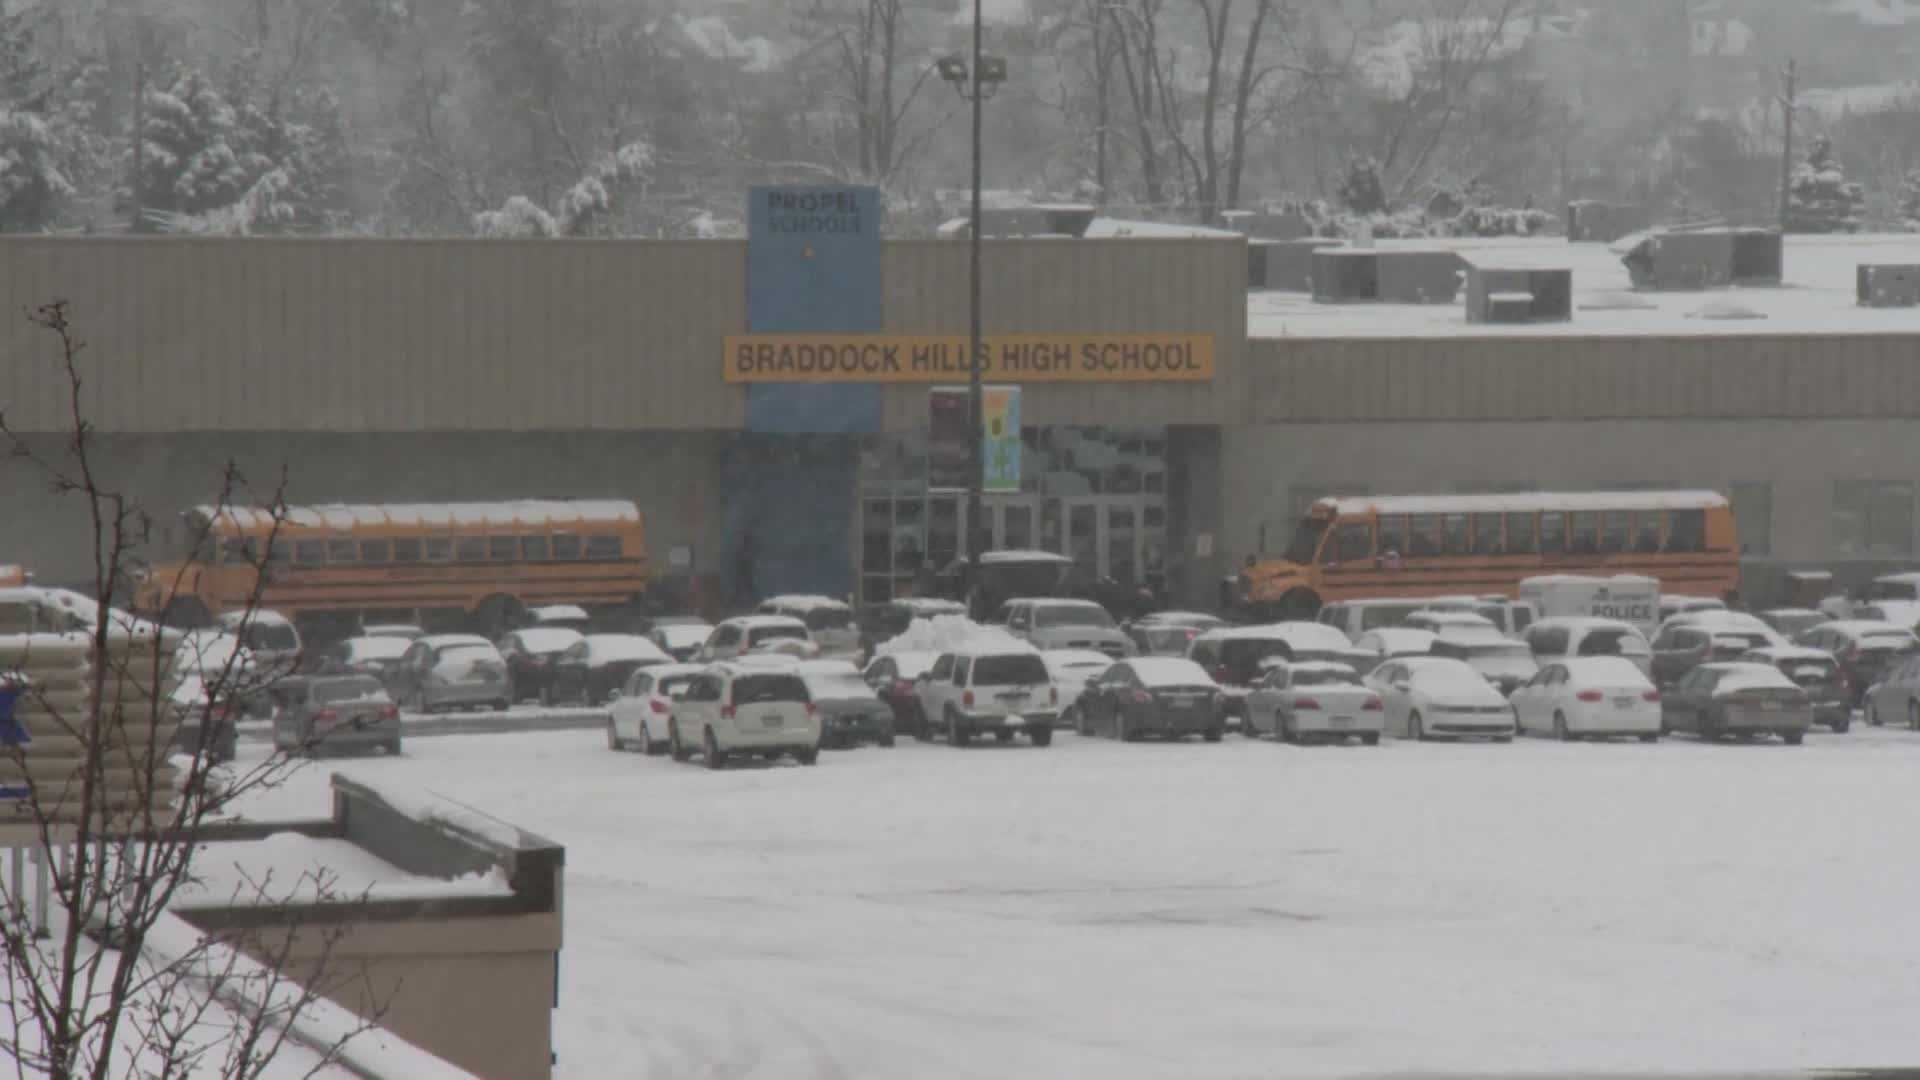 Propel Braddock Hills High School